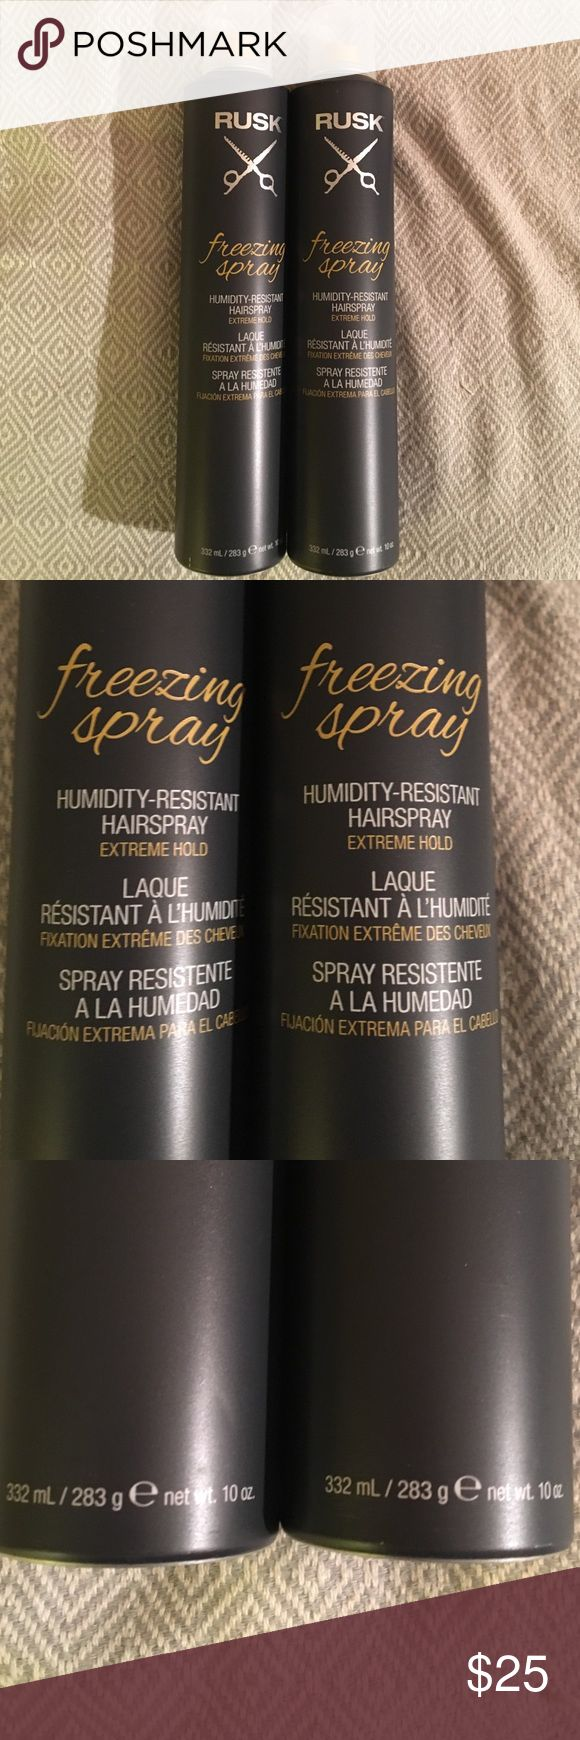 2 Rusk Freezing Spray - Humidity Resistant New!! New!!! Never Used!!!! Give styling miracles the reverence they deserve. Rusk's humidity-resistant hairspray stops time - at least for a day - to preserve any masterpiece. Looking for extreme? How 'bout gravity-defying shape and definition plus shine. Achieve perfection, then reach for Rusk Freezing Spray to keep it that way. Both are never used and new! Usually sells for for $19.00 each!!! Rusk Makeup